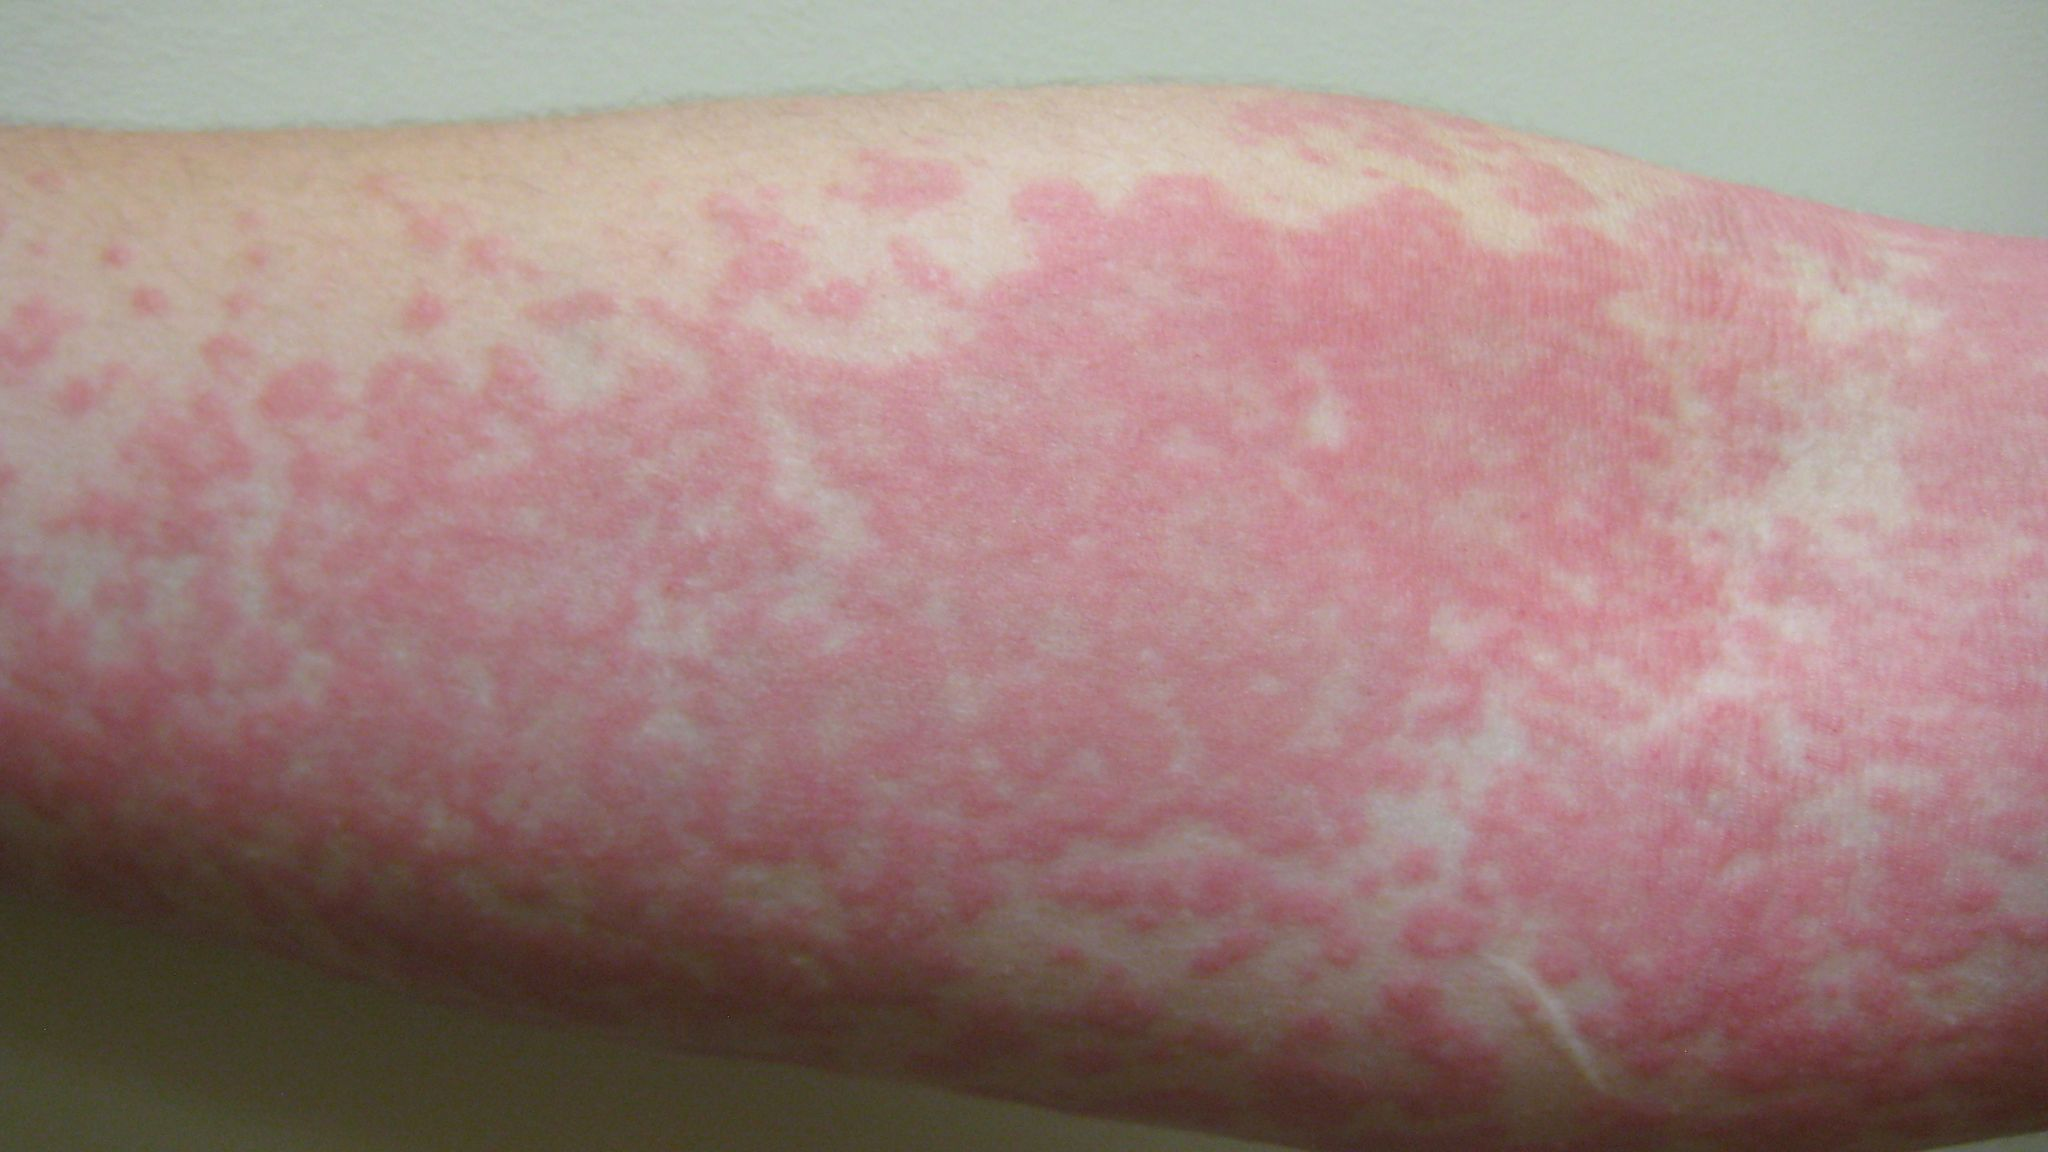 Coronavirus: Skin rash can be only COVID-19 symptom and should be fourth  key sign, study finds | UK News | Sky News